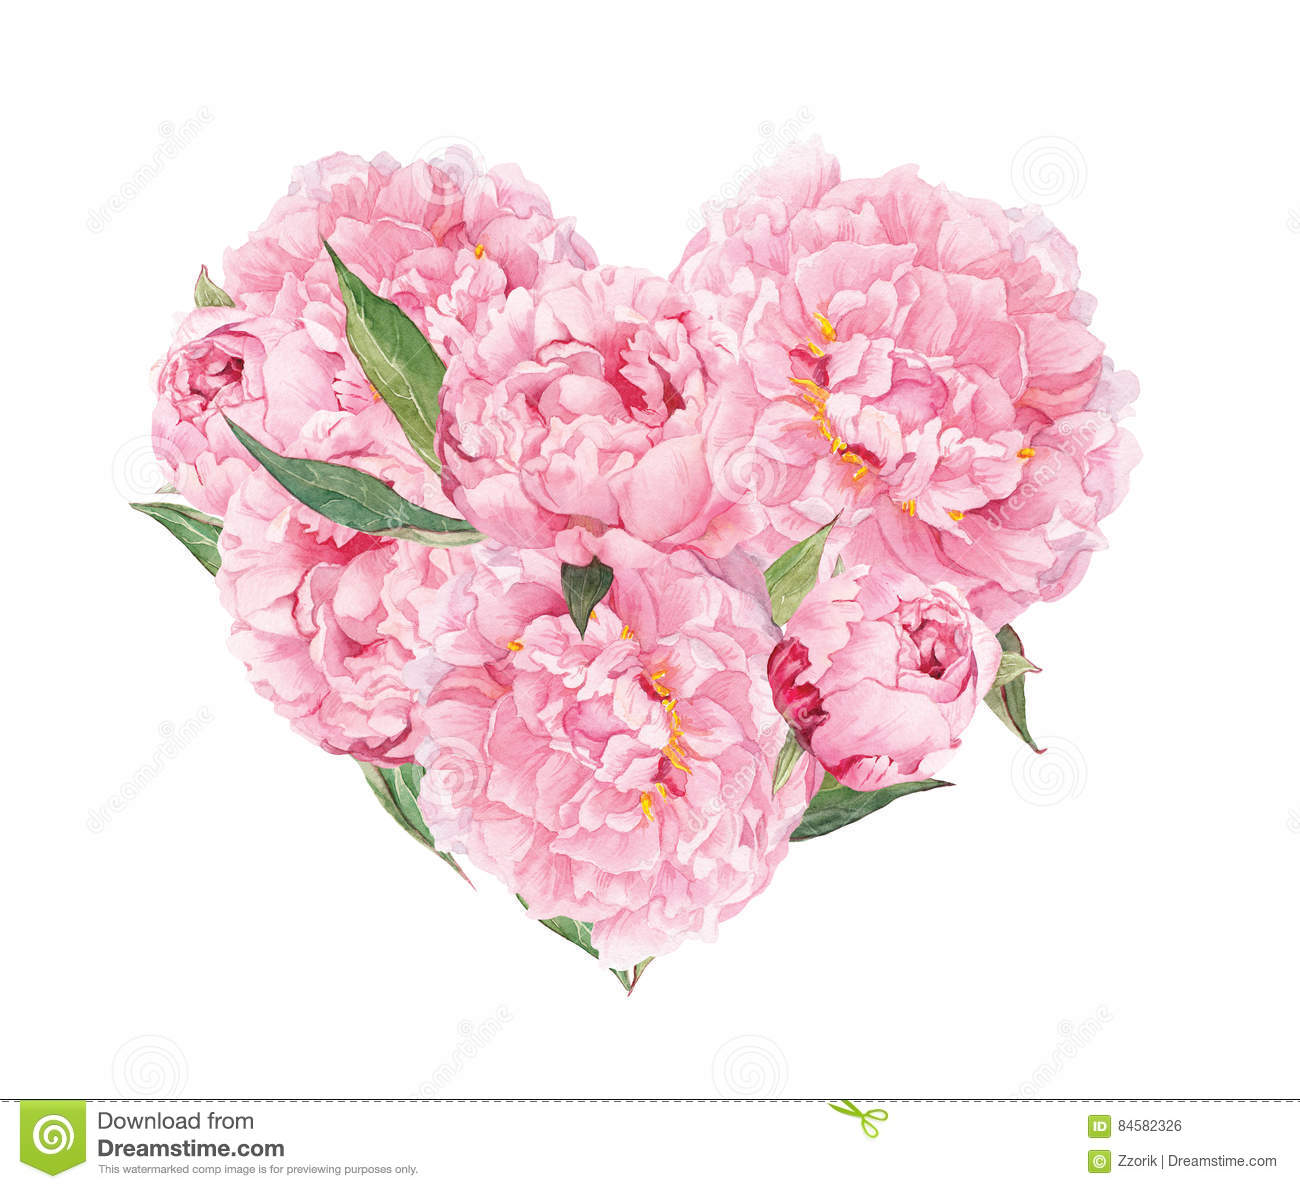 Floral Heart Pink Peonies Flowers Watercolor For Valentine Day